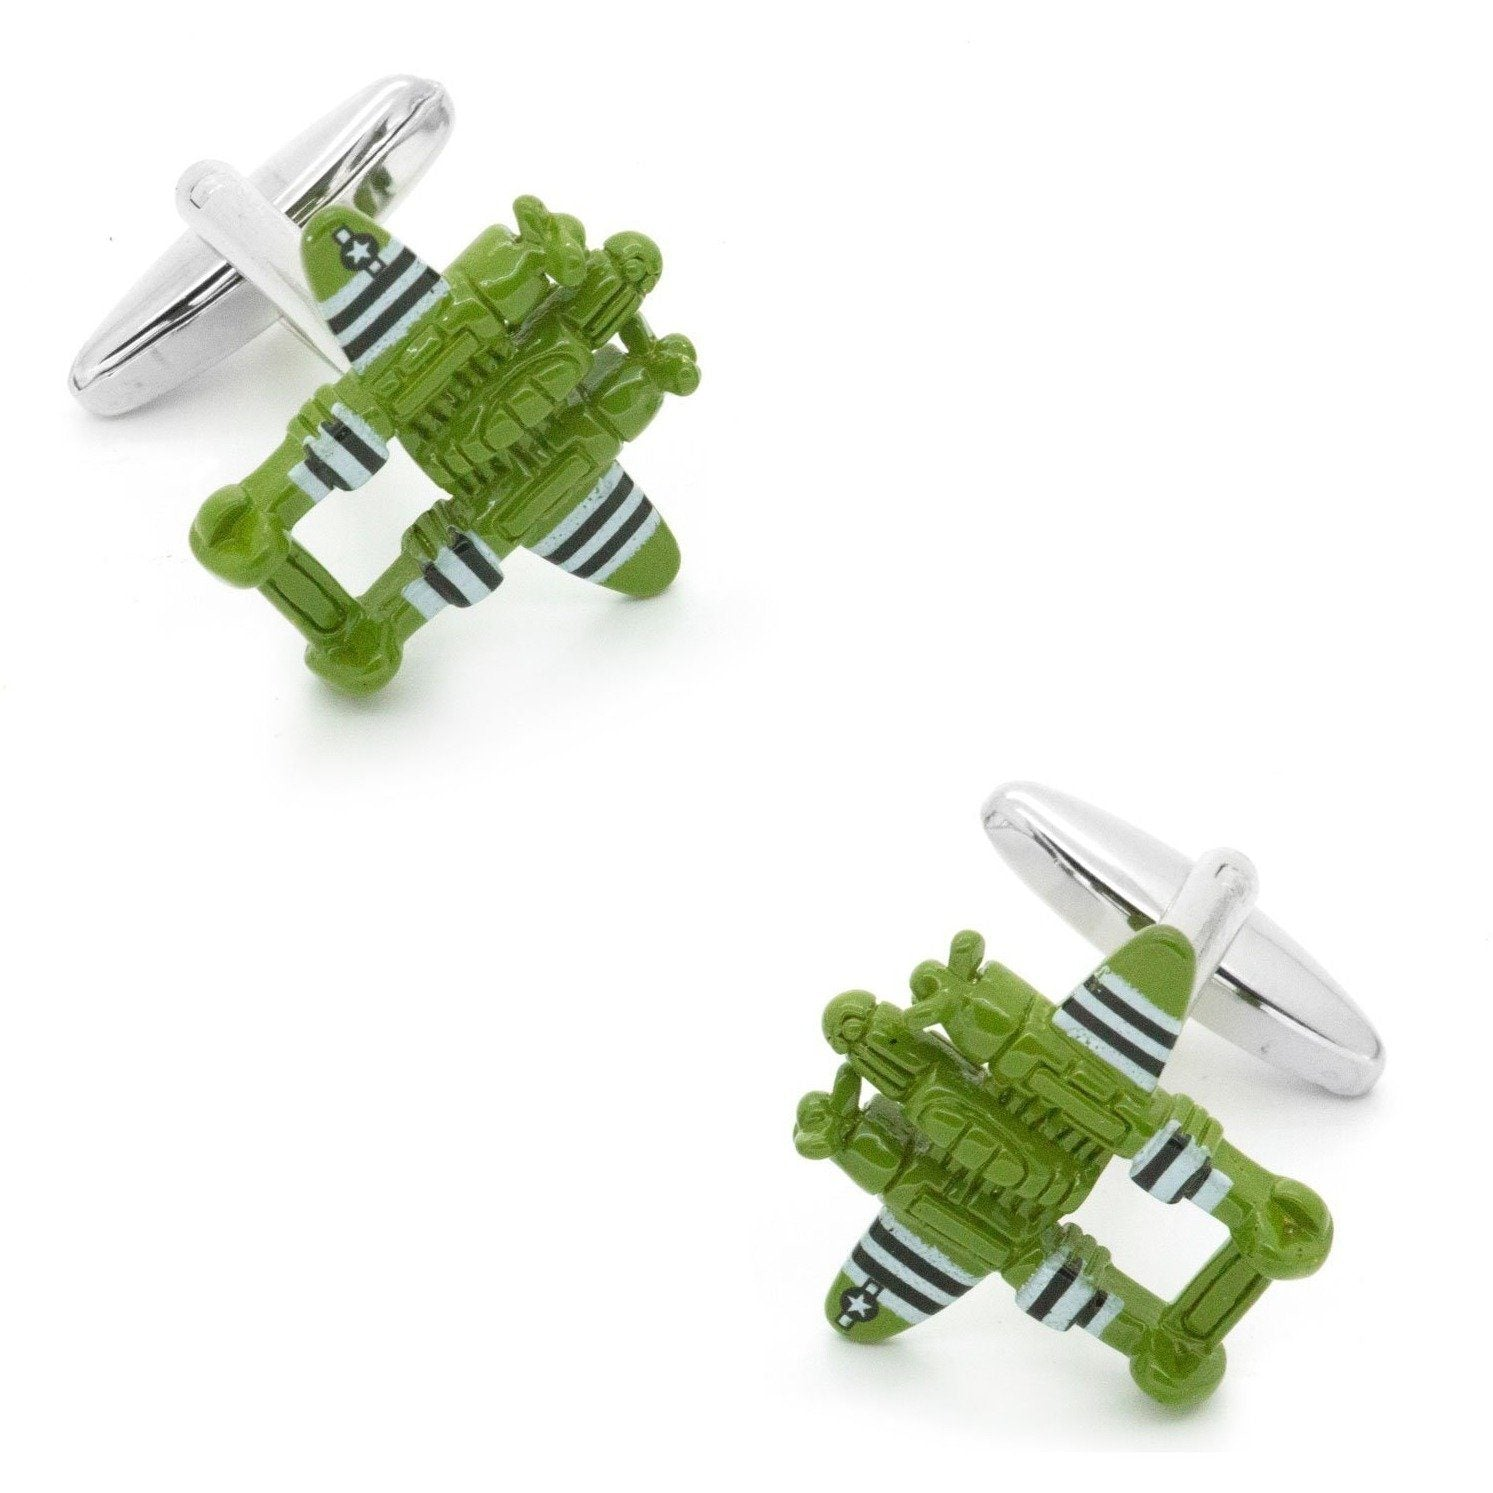 Green Fighter Jet Cufflinks, Novelty Cufflinks, Cuffed.com.au, CL6836, $29.00